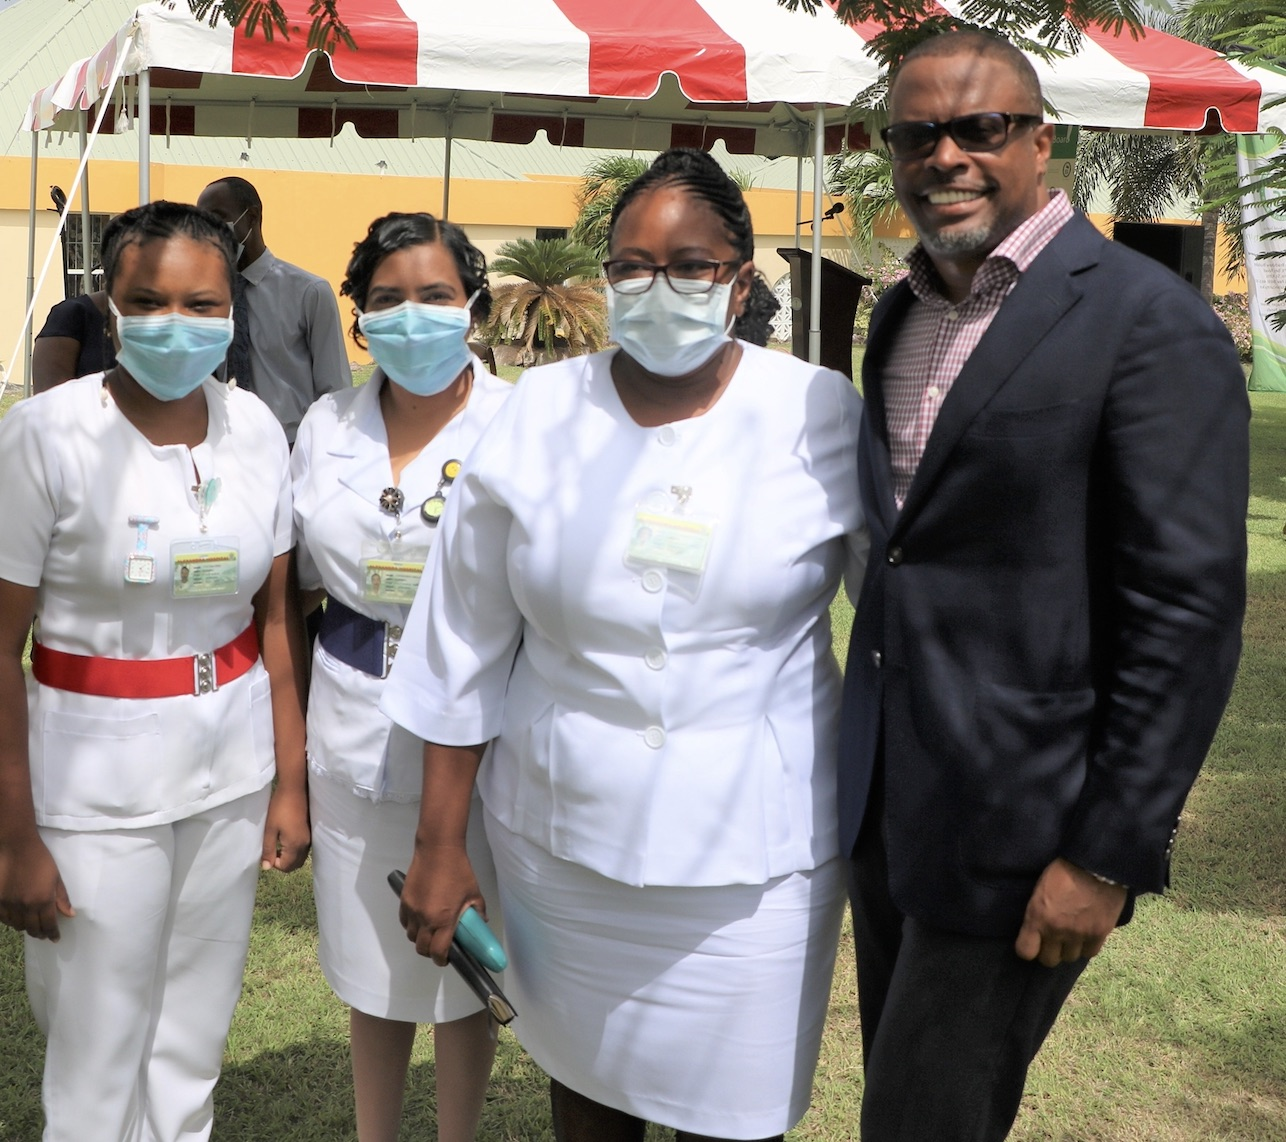 (far right) Premier of Nevis Hon. Mark Brantley, Minister of Finance and Senior Minister of Health in the Nevis Island Administration, with nurses at the Alexandra Hospital, Nevis (file photo)